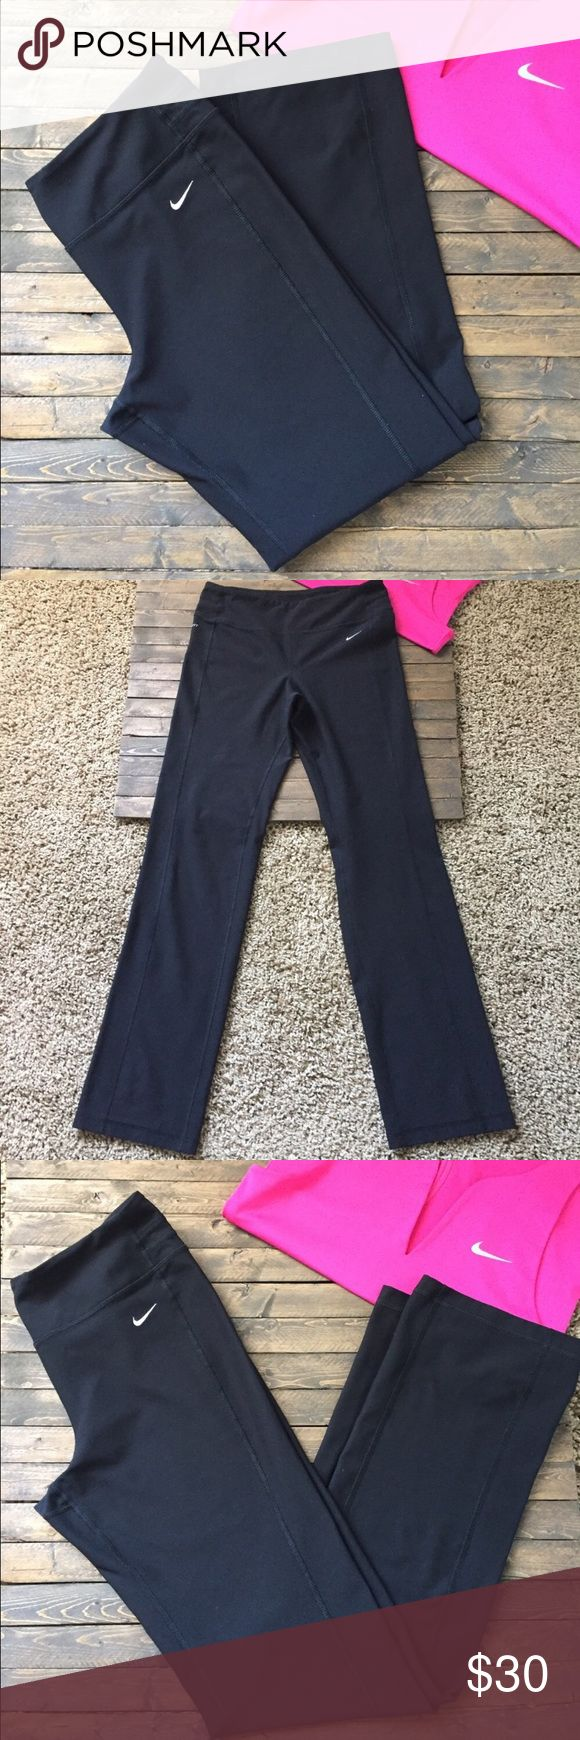 Nike yoga pants New and never been worn! They are just a little too big on me! They would probably fit a medium better if your looking for a snug fit. Feel free too make an offer! Nike Pants Leggings